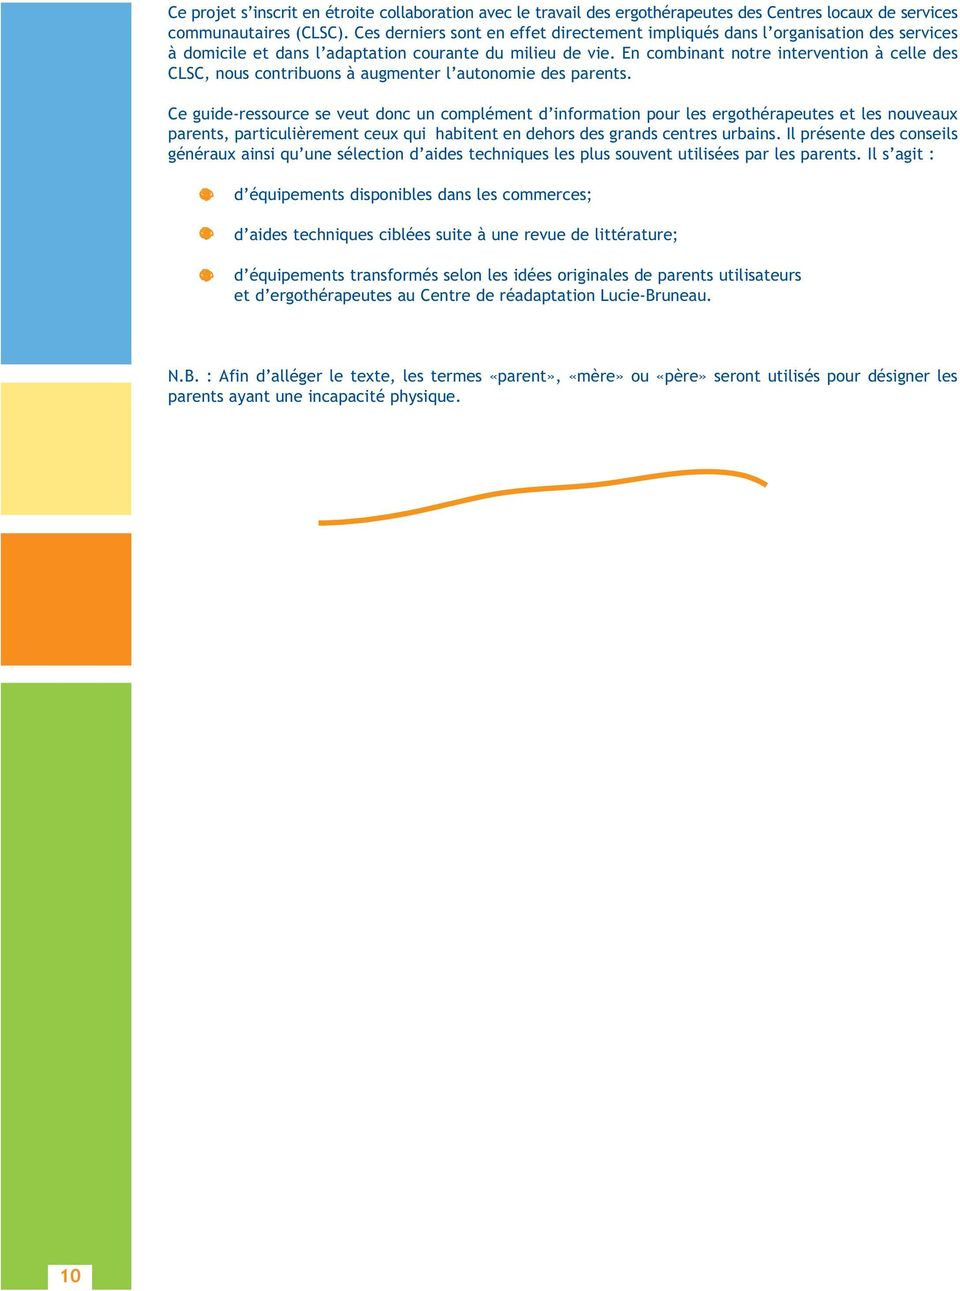 En combinant notre intervention à celle des CLSC, nous contribuons à augmenter l autonomie des parents.